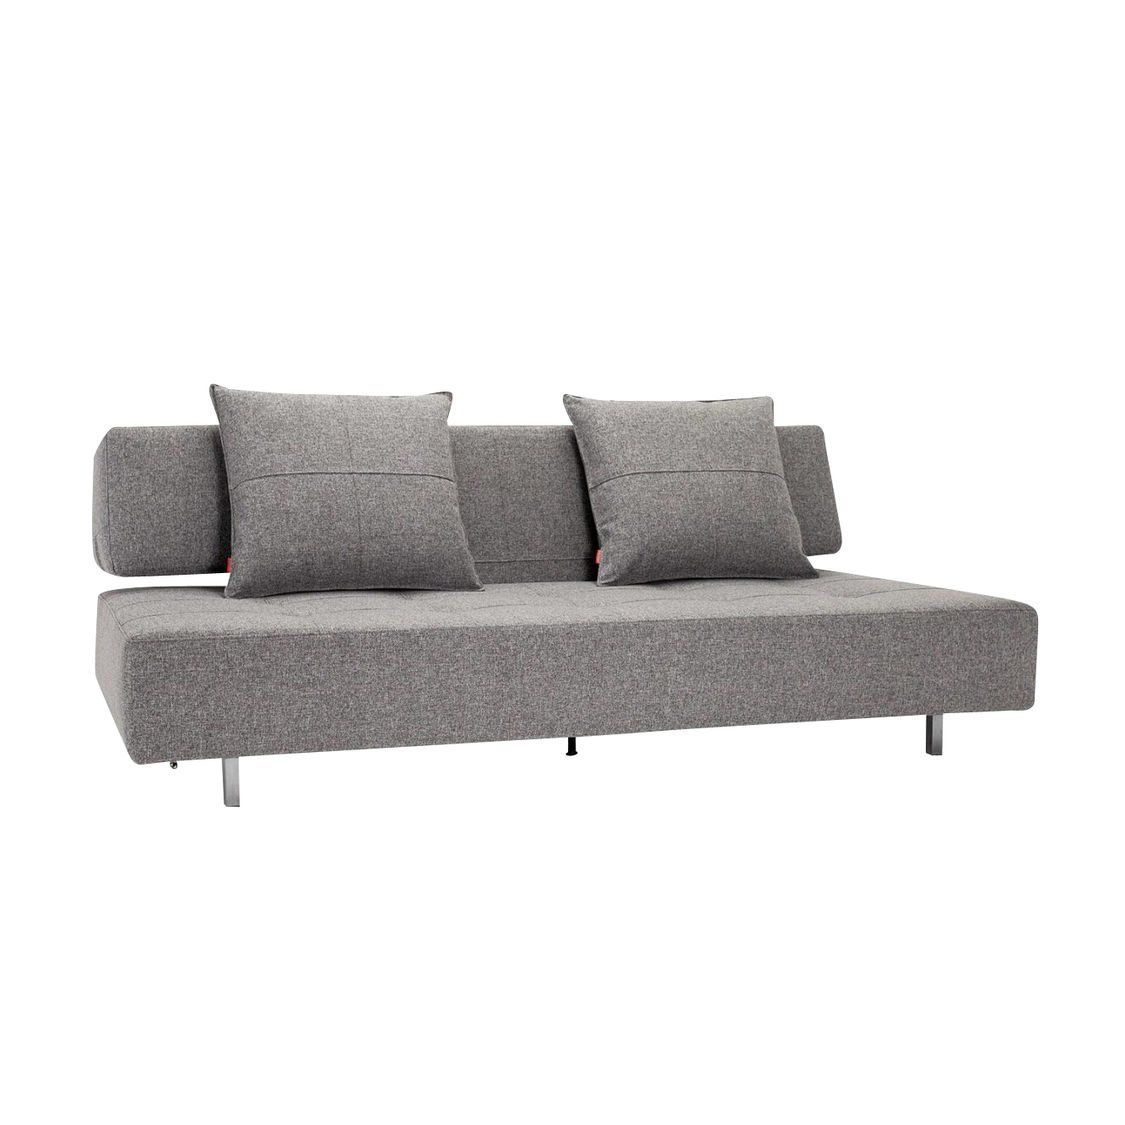 Long Horn Excess Sofa Bed